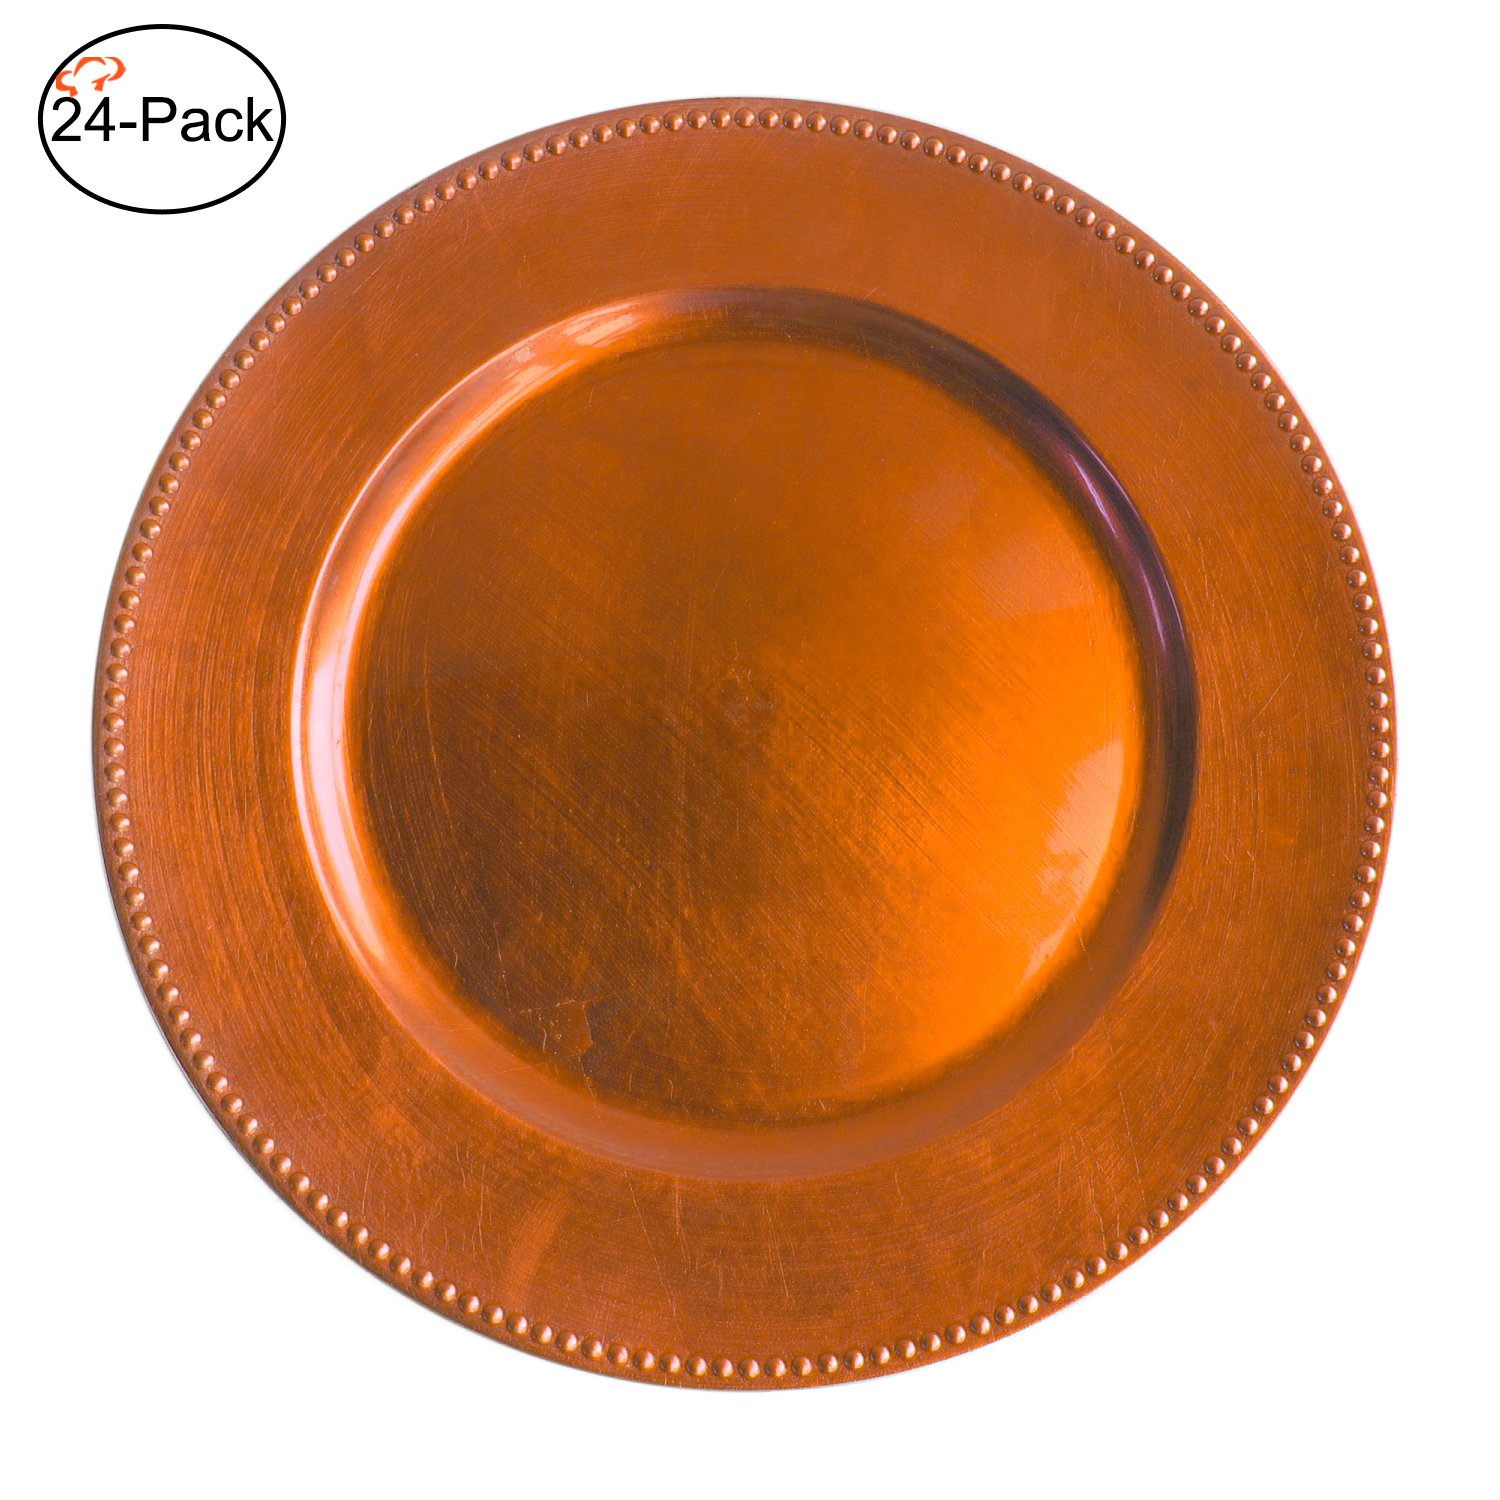 Tiger Chef 13-inch Orange Round Beaded Charger Plates, Set of 24 Dinner Chargers (24-Pack)